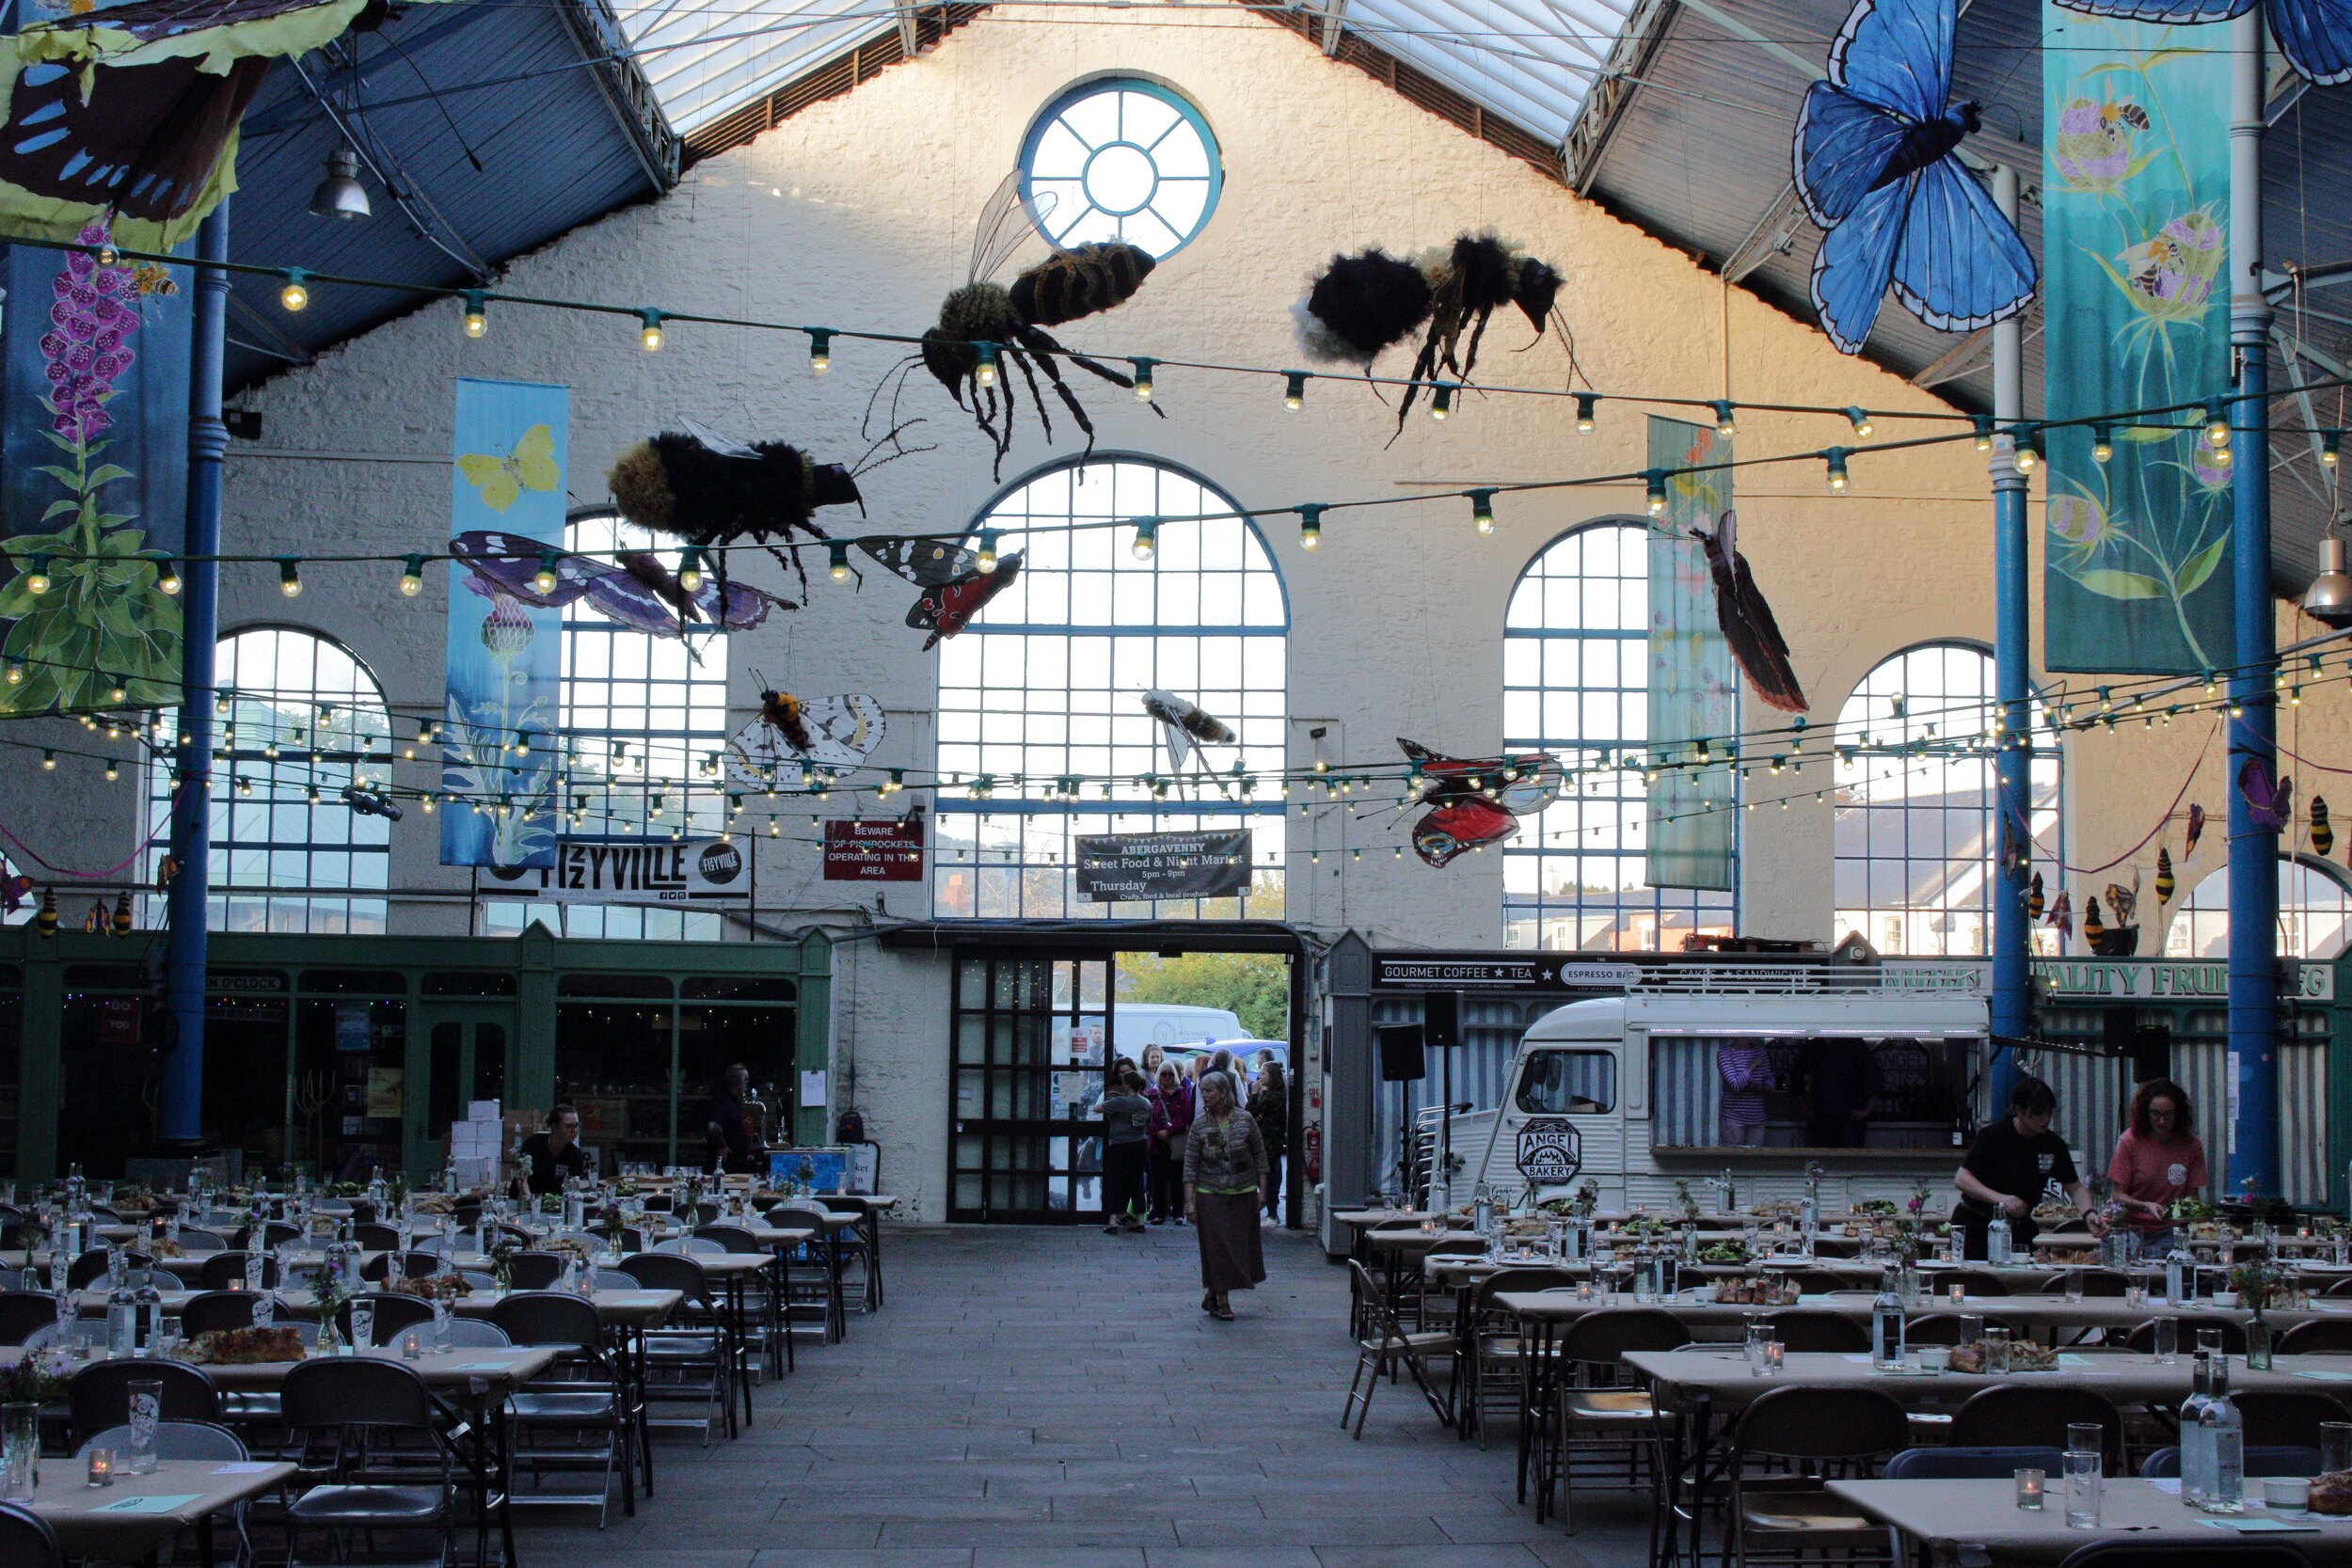 Bettina Reeves Installation at Abergavenny Market Hall  Picture: Credit Henry Wheatley /Abergavenny Food Festival